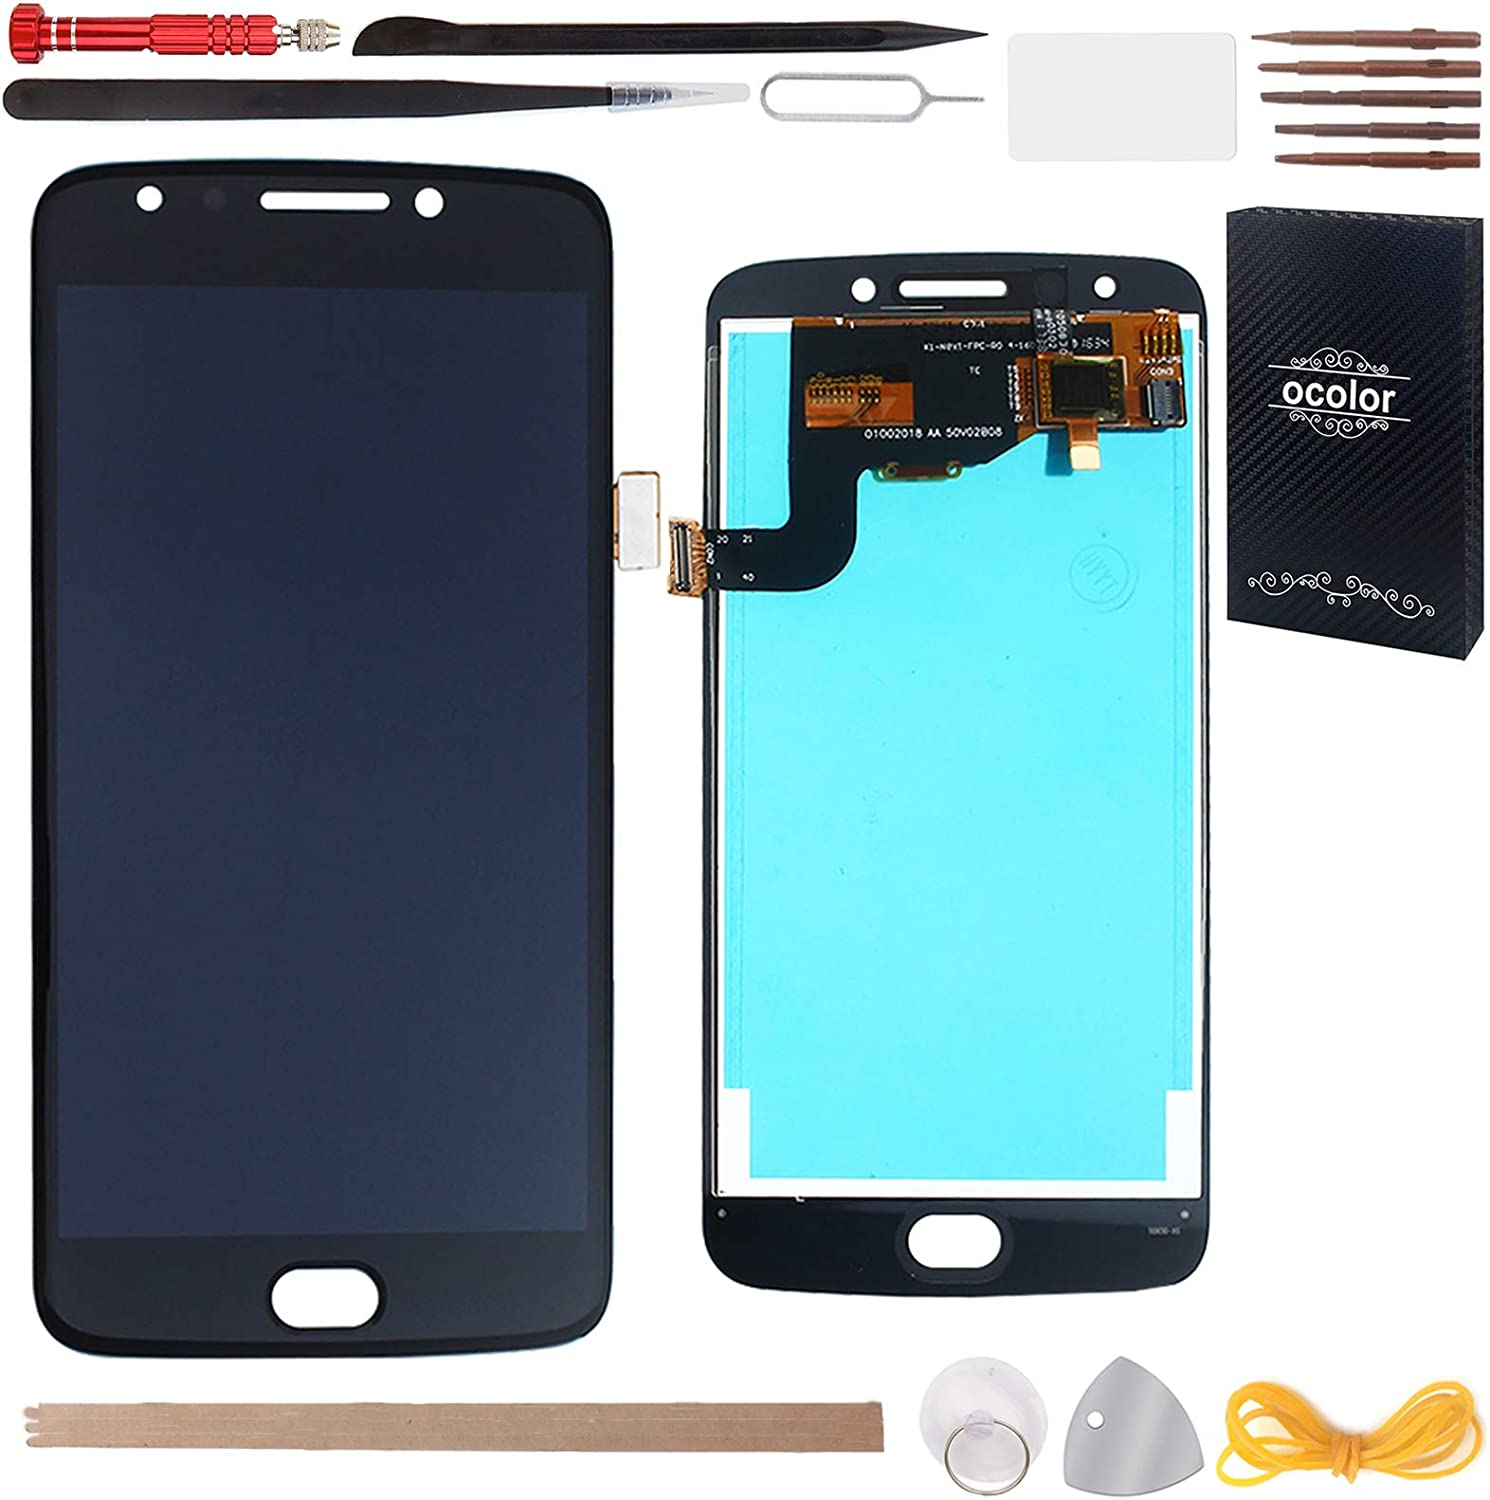 HYYT Replacement For Motorola MOTO E4 XT1767 US Version LCD Screen Display and Touch Screen Digitizer Glass Replacement